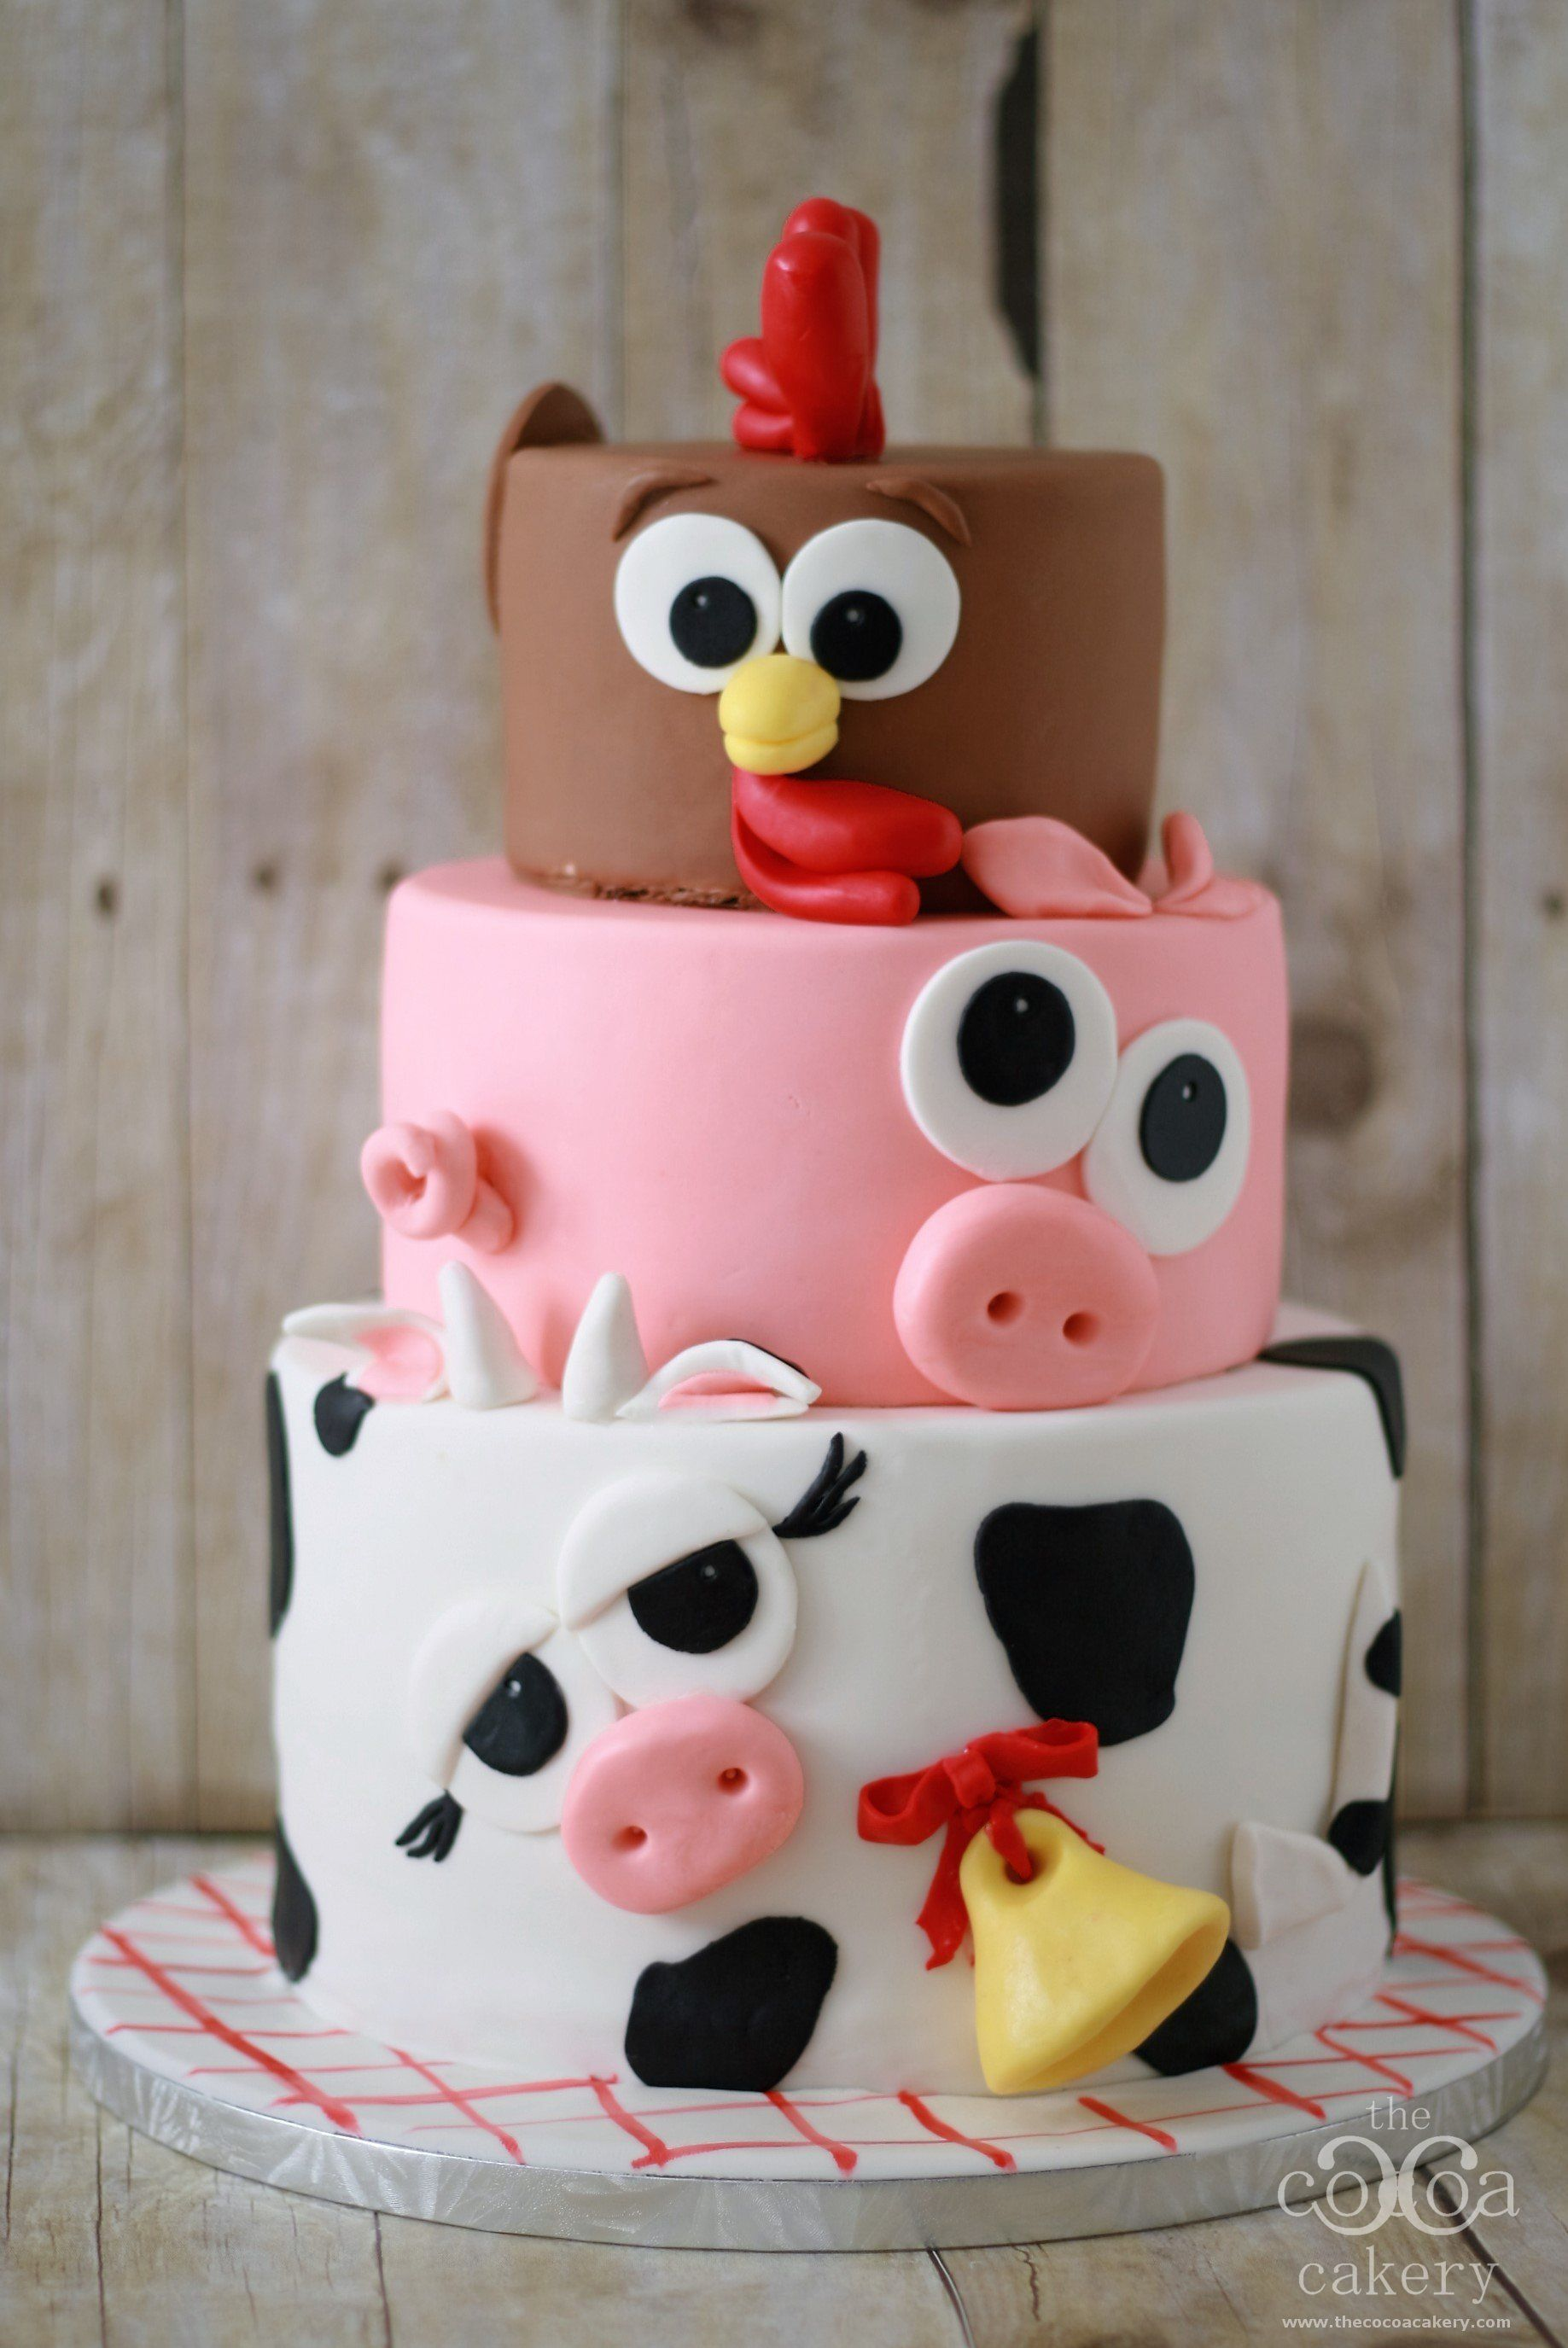 Chickens Pigs And Cows